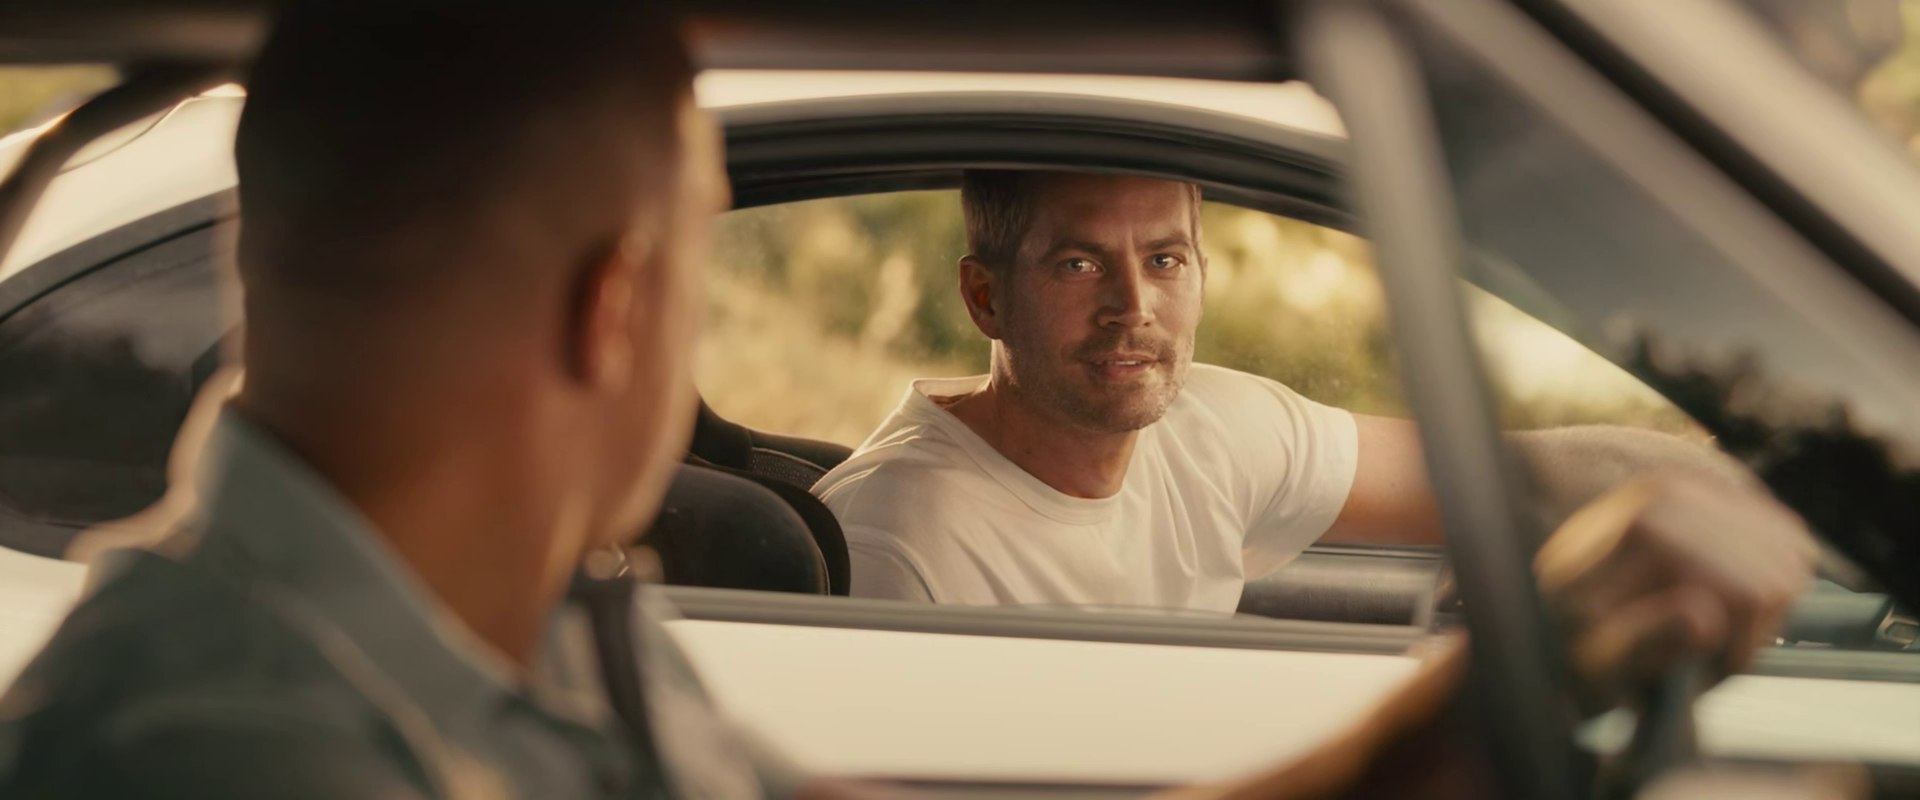 fast and furious 7 torrent 2015 Fast and furious 7 2015 1080p hdrip x264 ac3-jyk - torrent kitty - free torrent to magnet link conversion service.